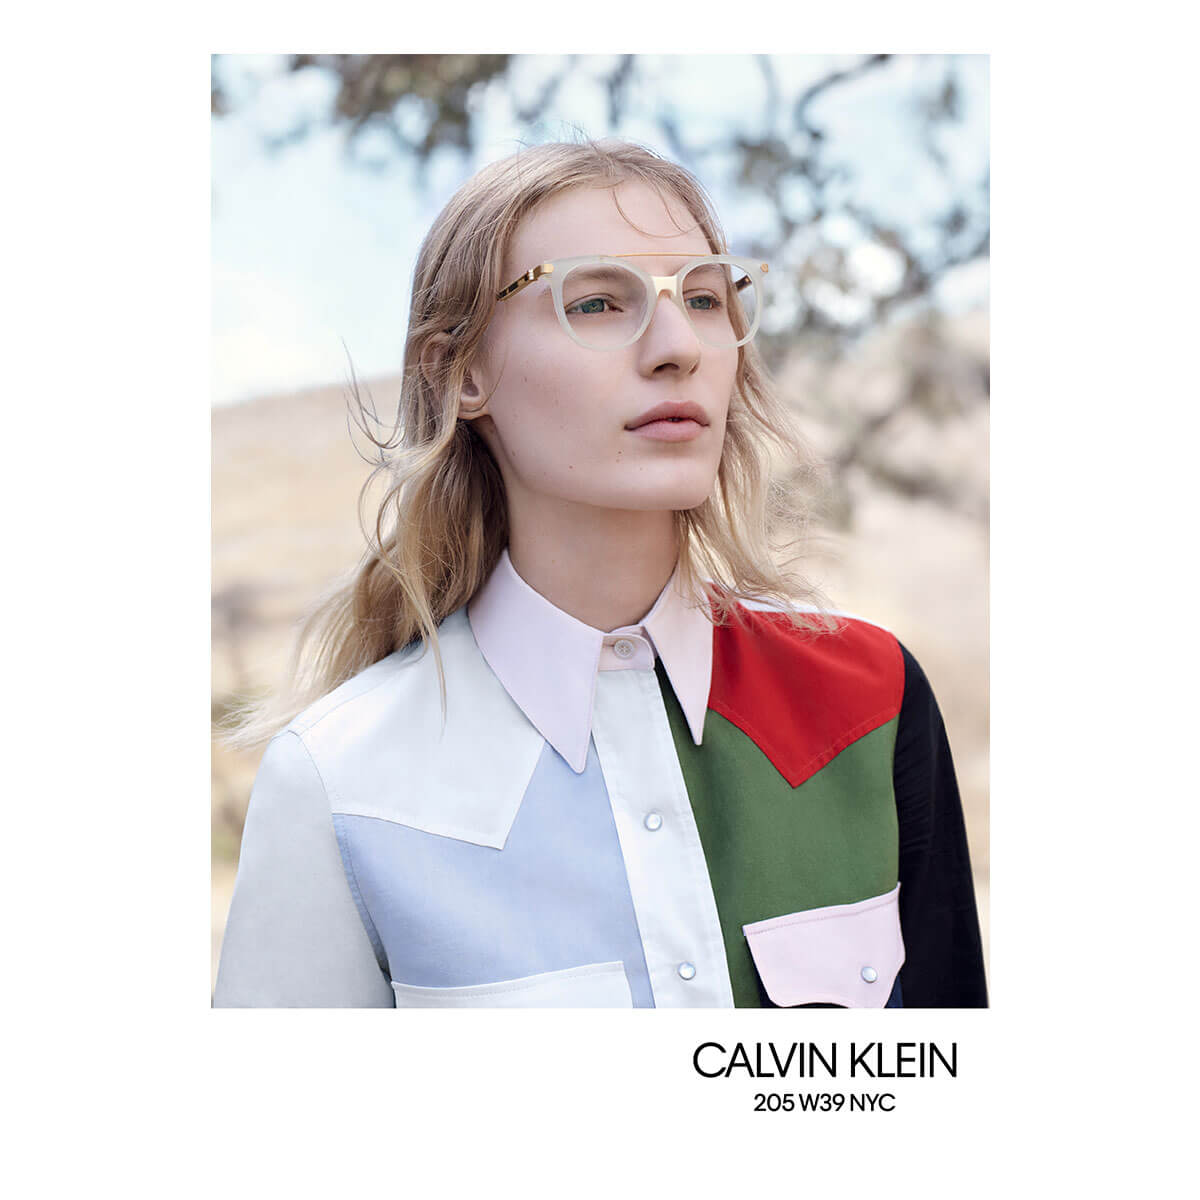 15a6f24760 Raf Simons  First Eyewear Collection For Calvin Klein Is Here